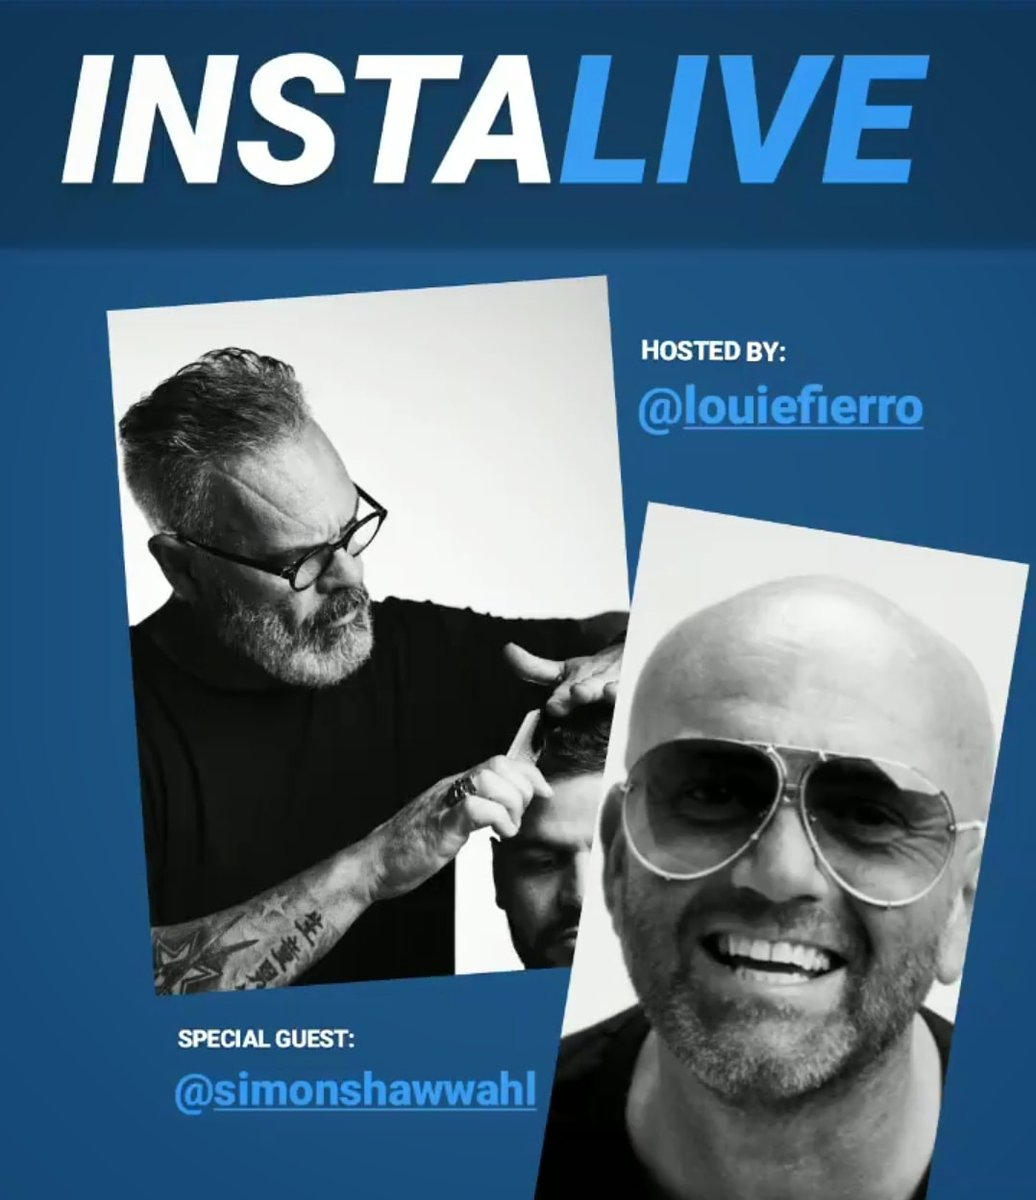 Don't miss the #INSTALIVE today with our Education Director, Louie Fierro on his Instagram page (http://www.instagram.com/louiefierro ) w/Simon Shaw, Global Artistic Director for Wahl! TODAY at 11:00 a.m. E.S.T.  See you there!   #canadianbarbers #WahlLove #wahlpro #stayhome #barberchatpic.twitter.com/wAXJA7UmrO